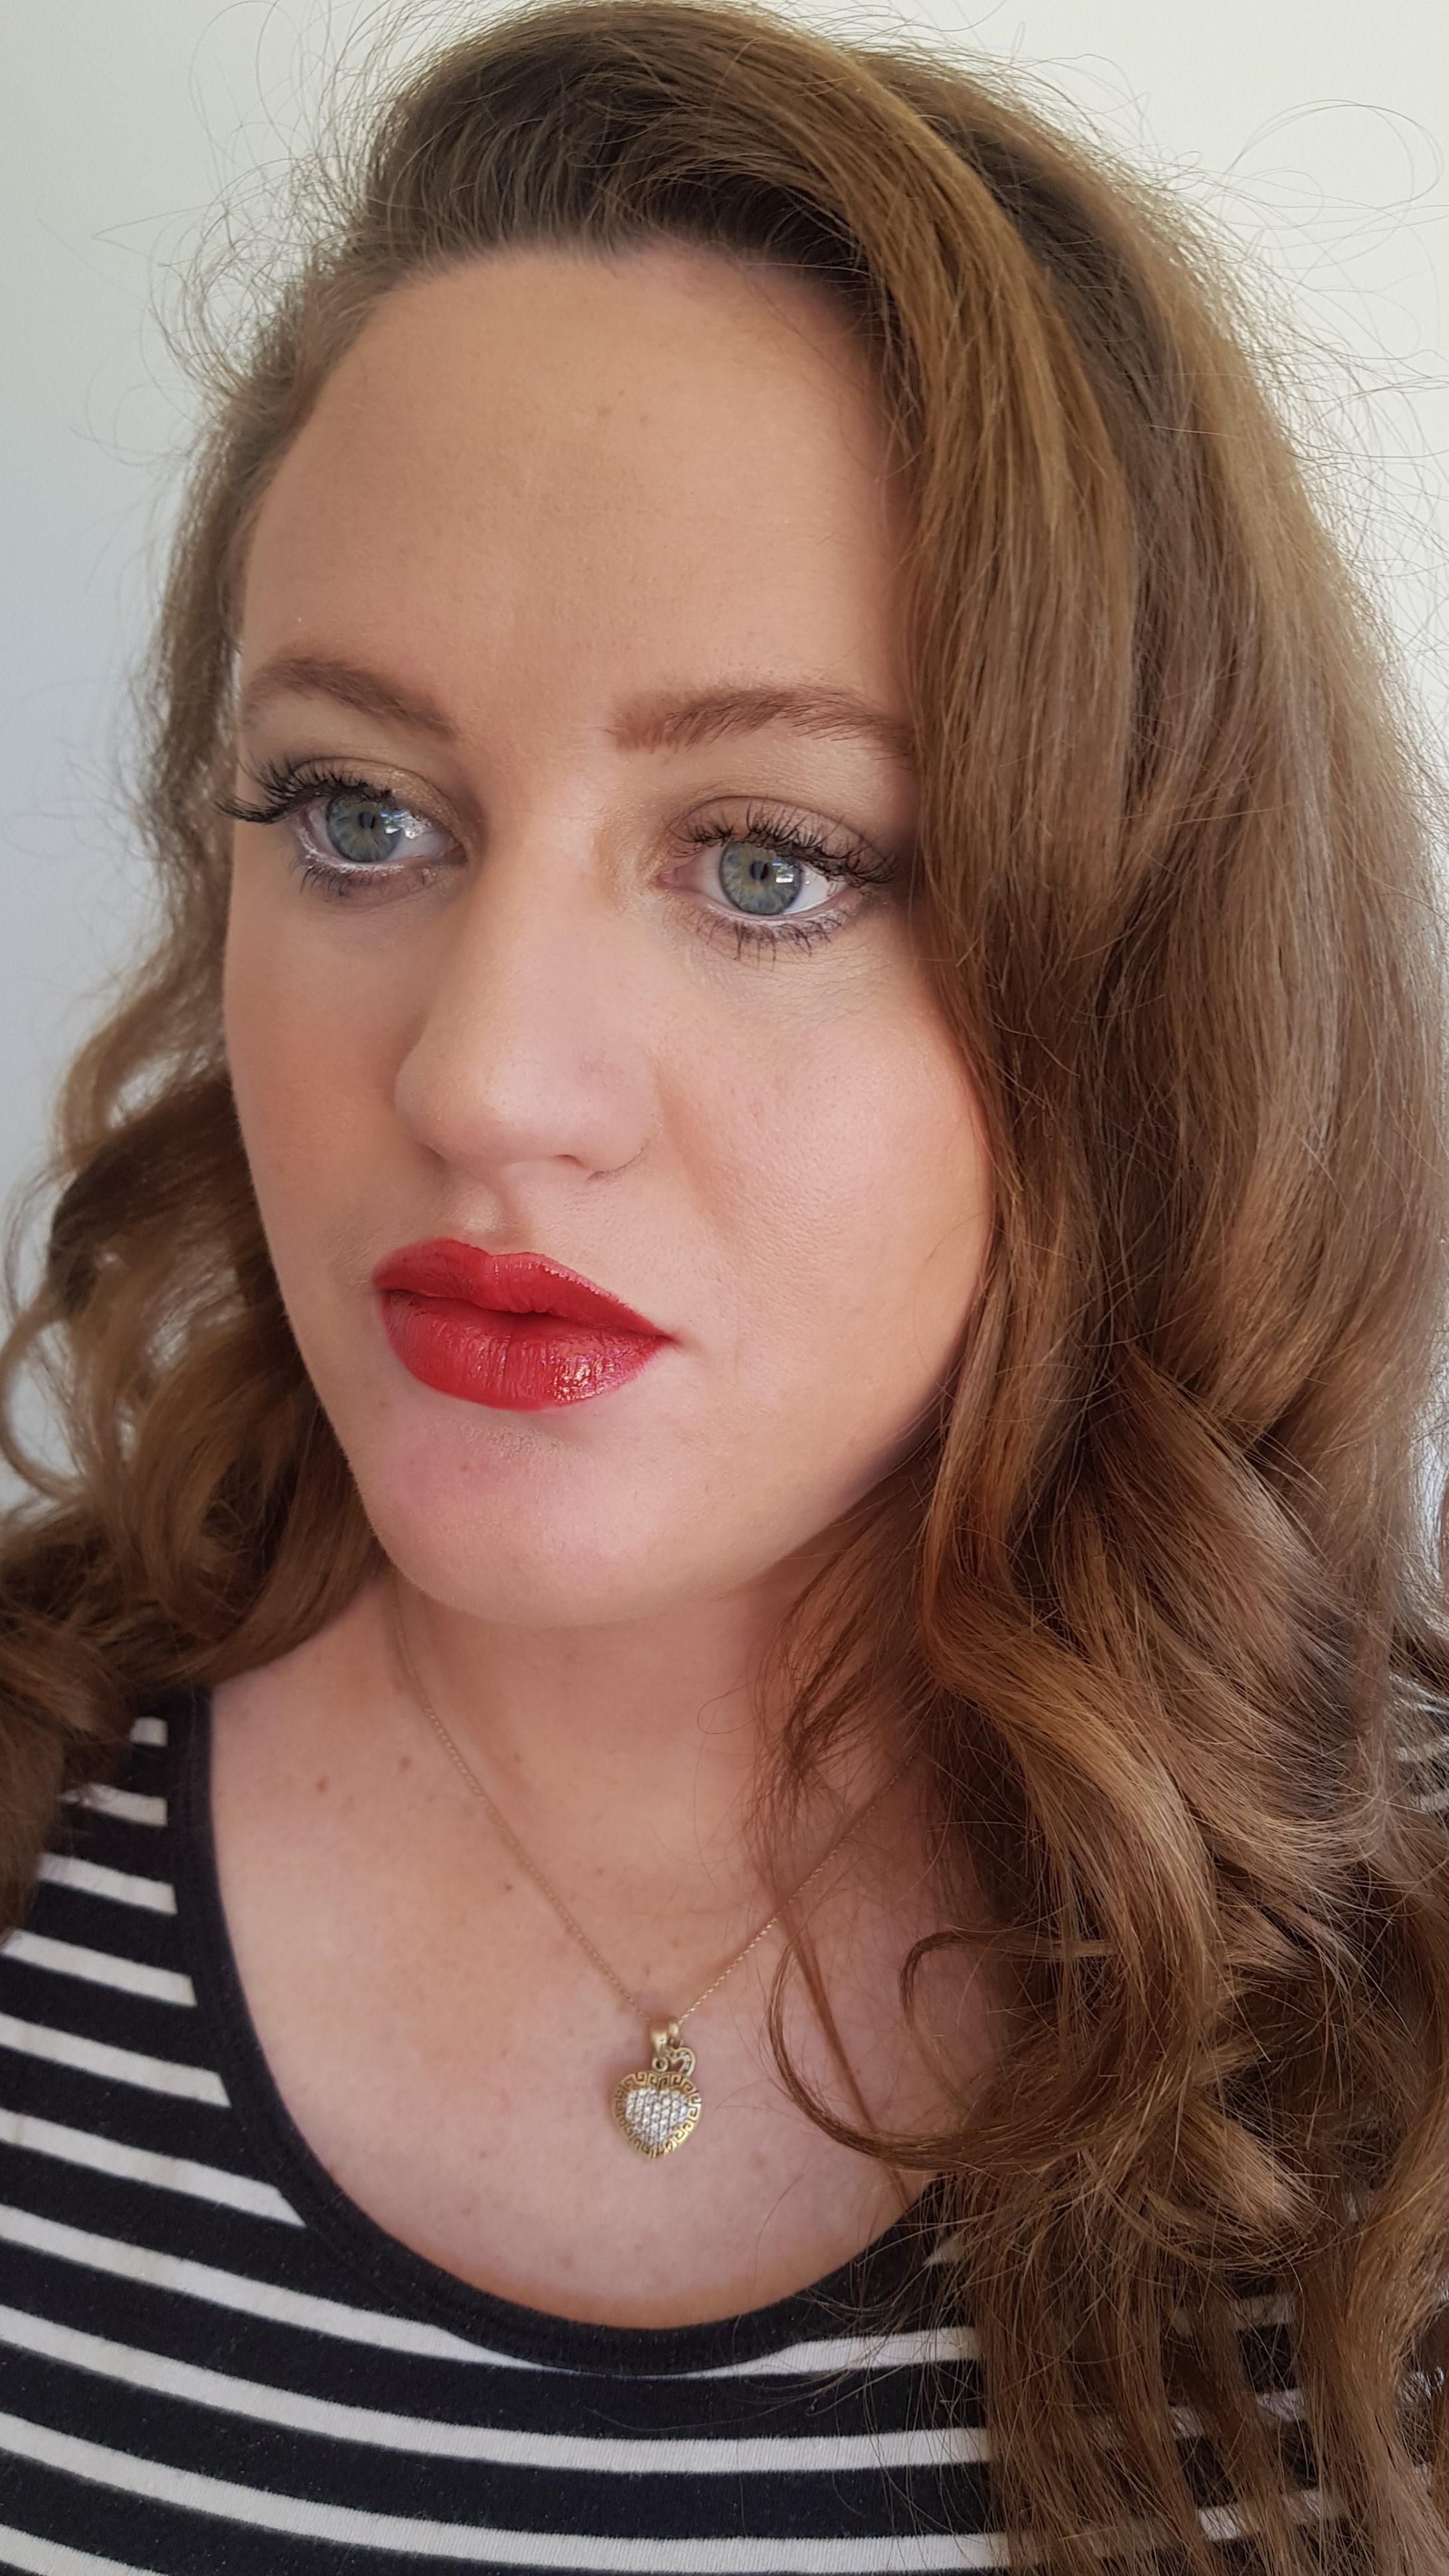 hair and makeup artist in Busselton